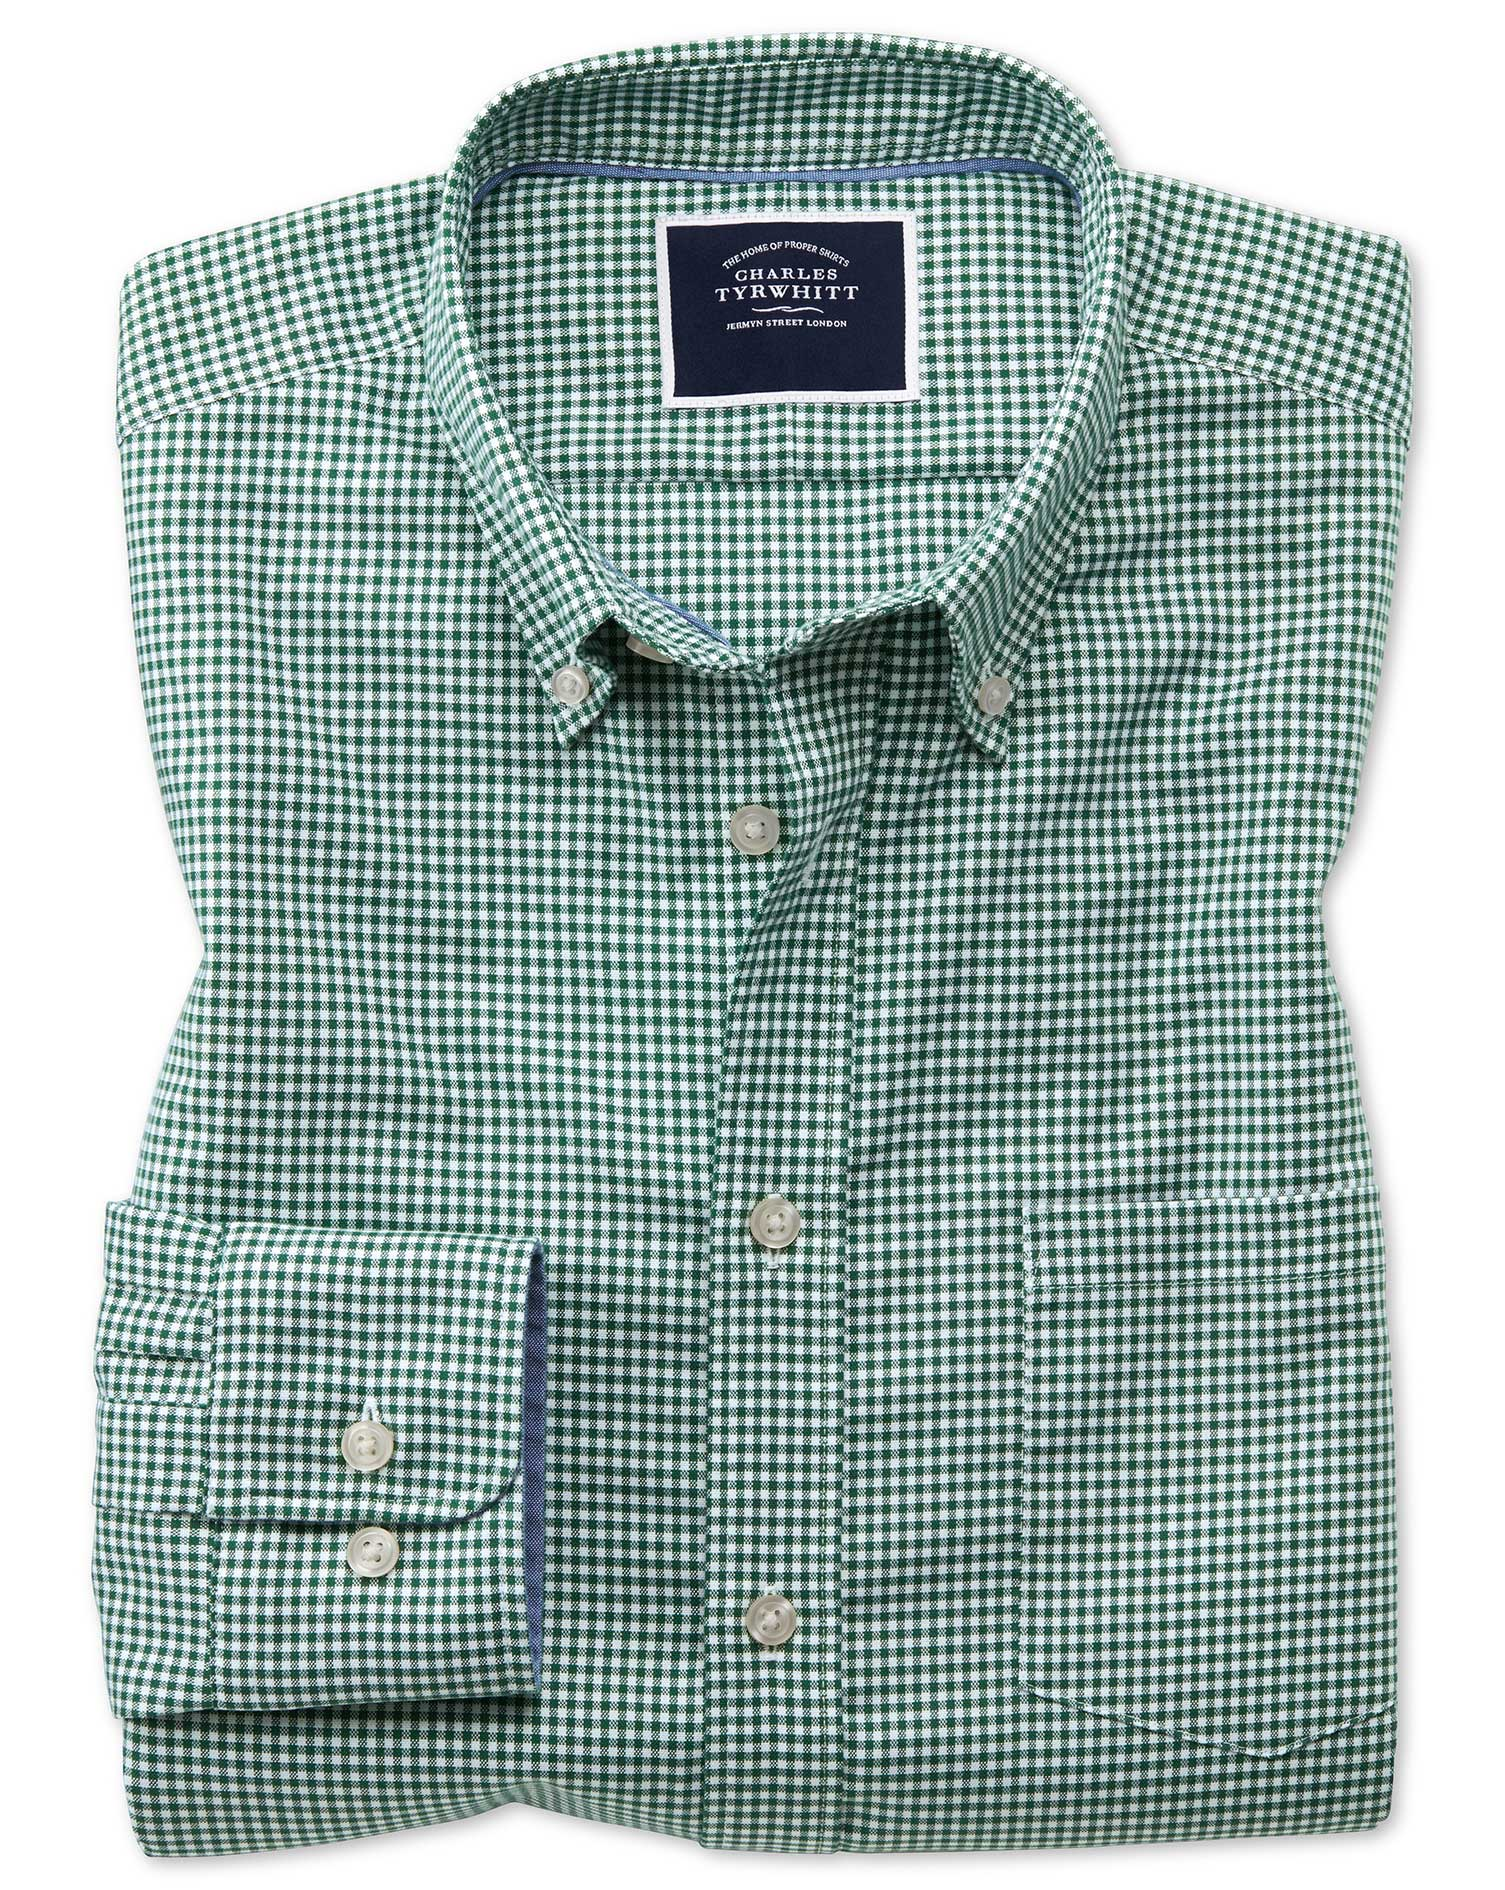 Classic Fit Dark Green Gingham Soft Washed Non-Iron Stretch Cotton Shirt Single Cuff Size XXL by Cha